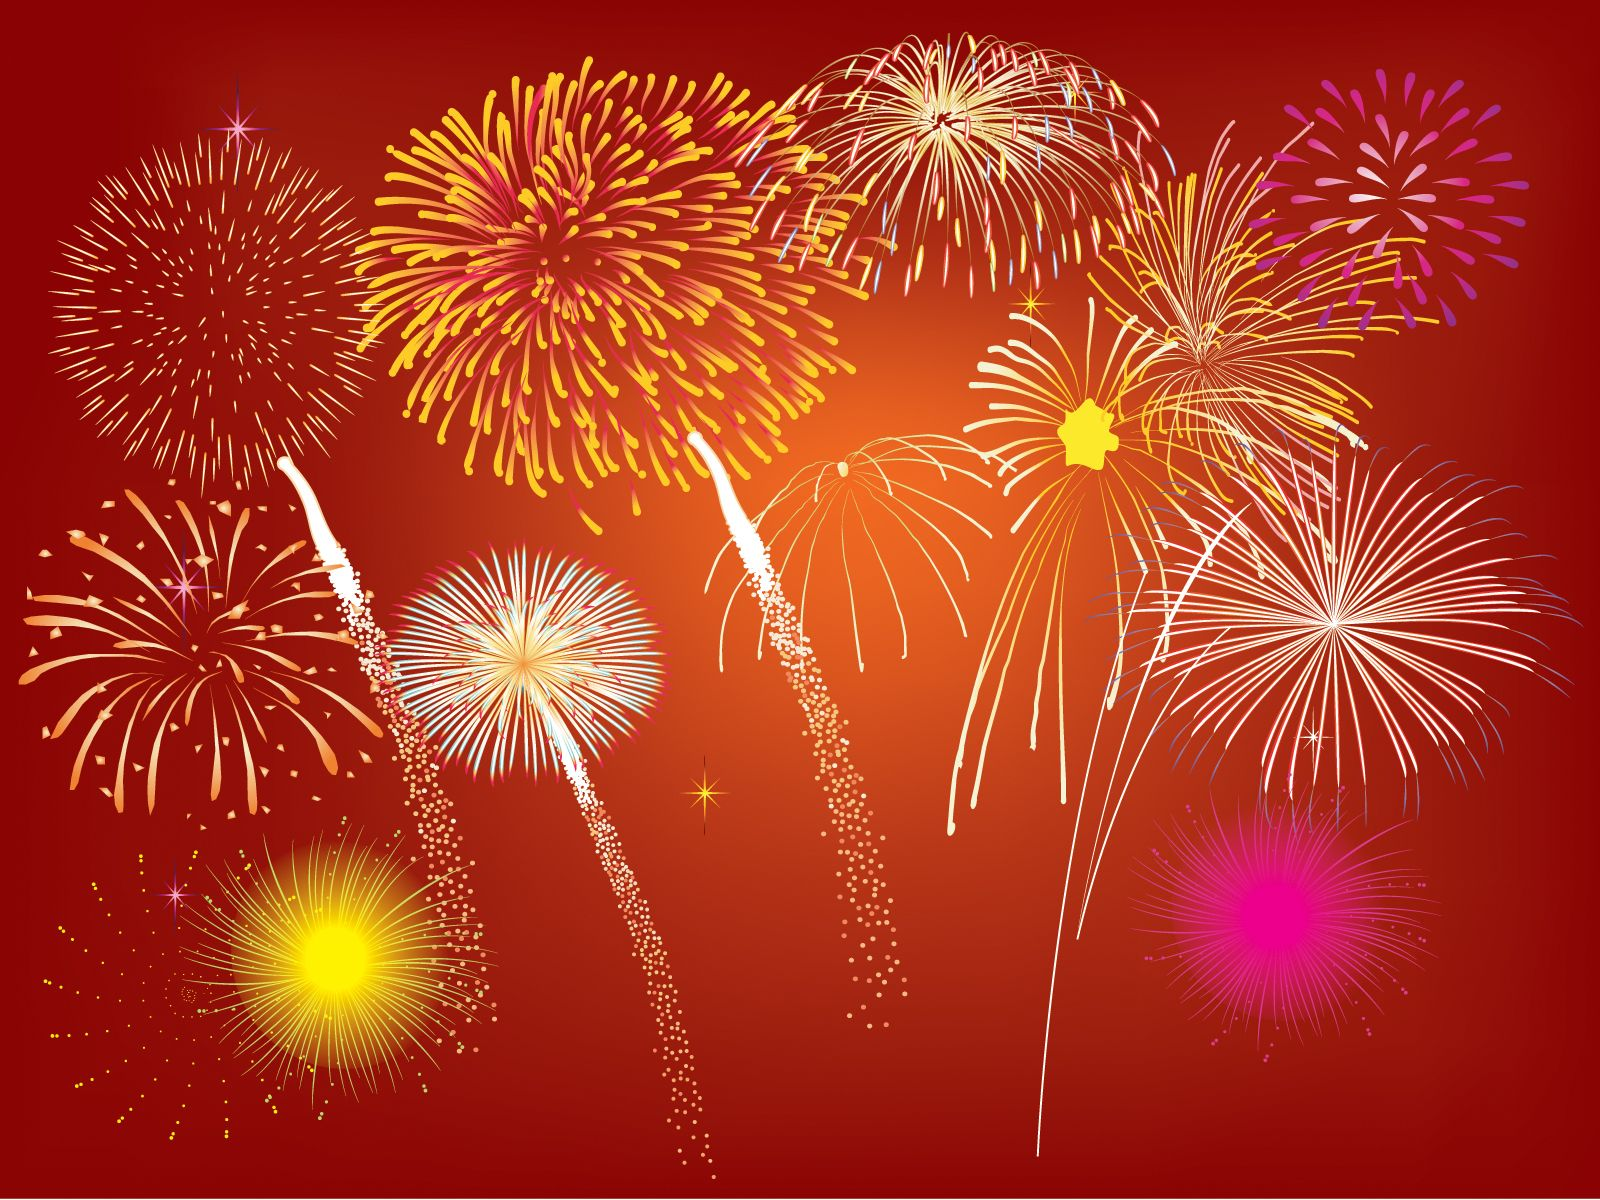 Next stop pinterest technology pinterest template fireworks powerpoint template is a great background design with fireworks over the red background color that was designed for your powerpoint presentations toneelgroepblik Choice Image